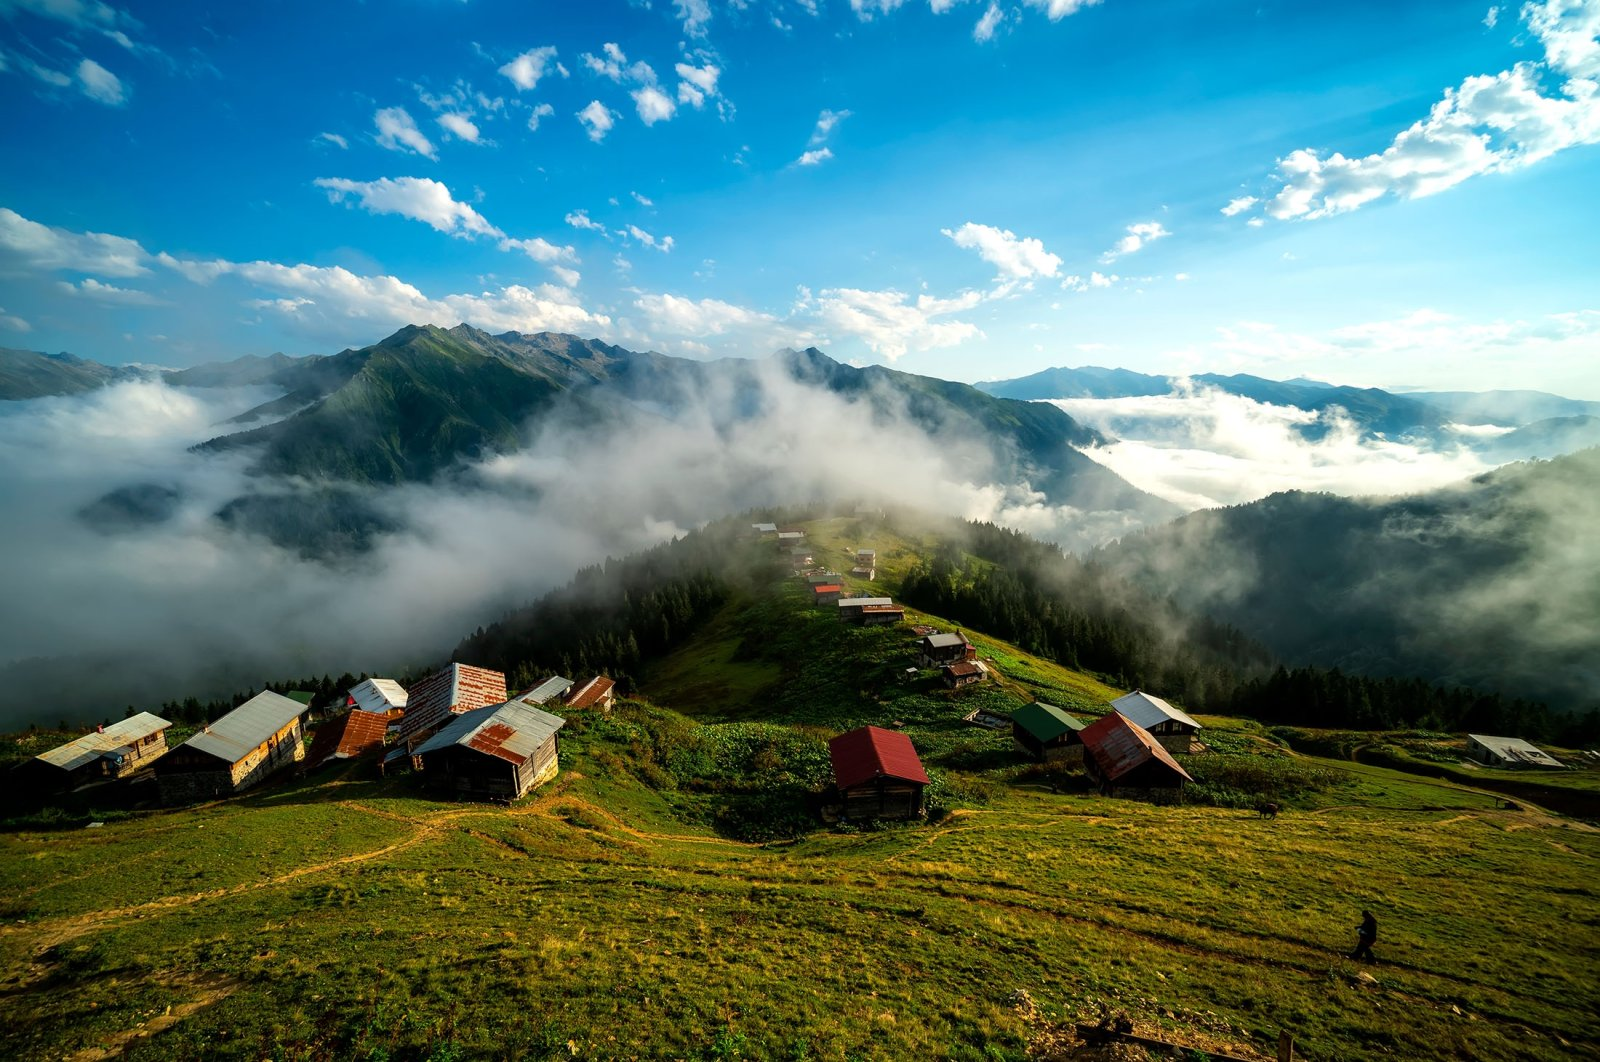 A general view of the Pokut Plateau in Turkey's Rize province. (Shutterstock Photo)